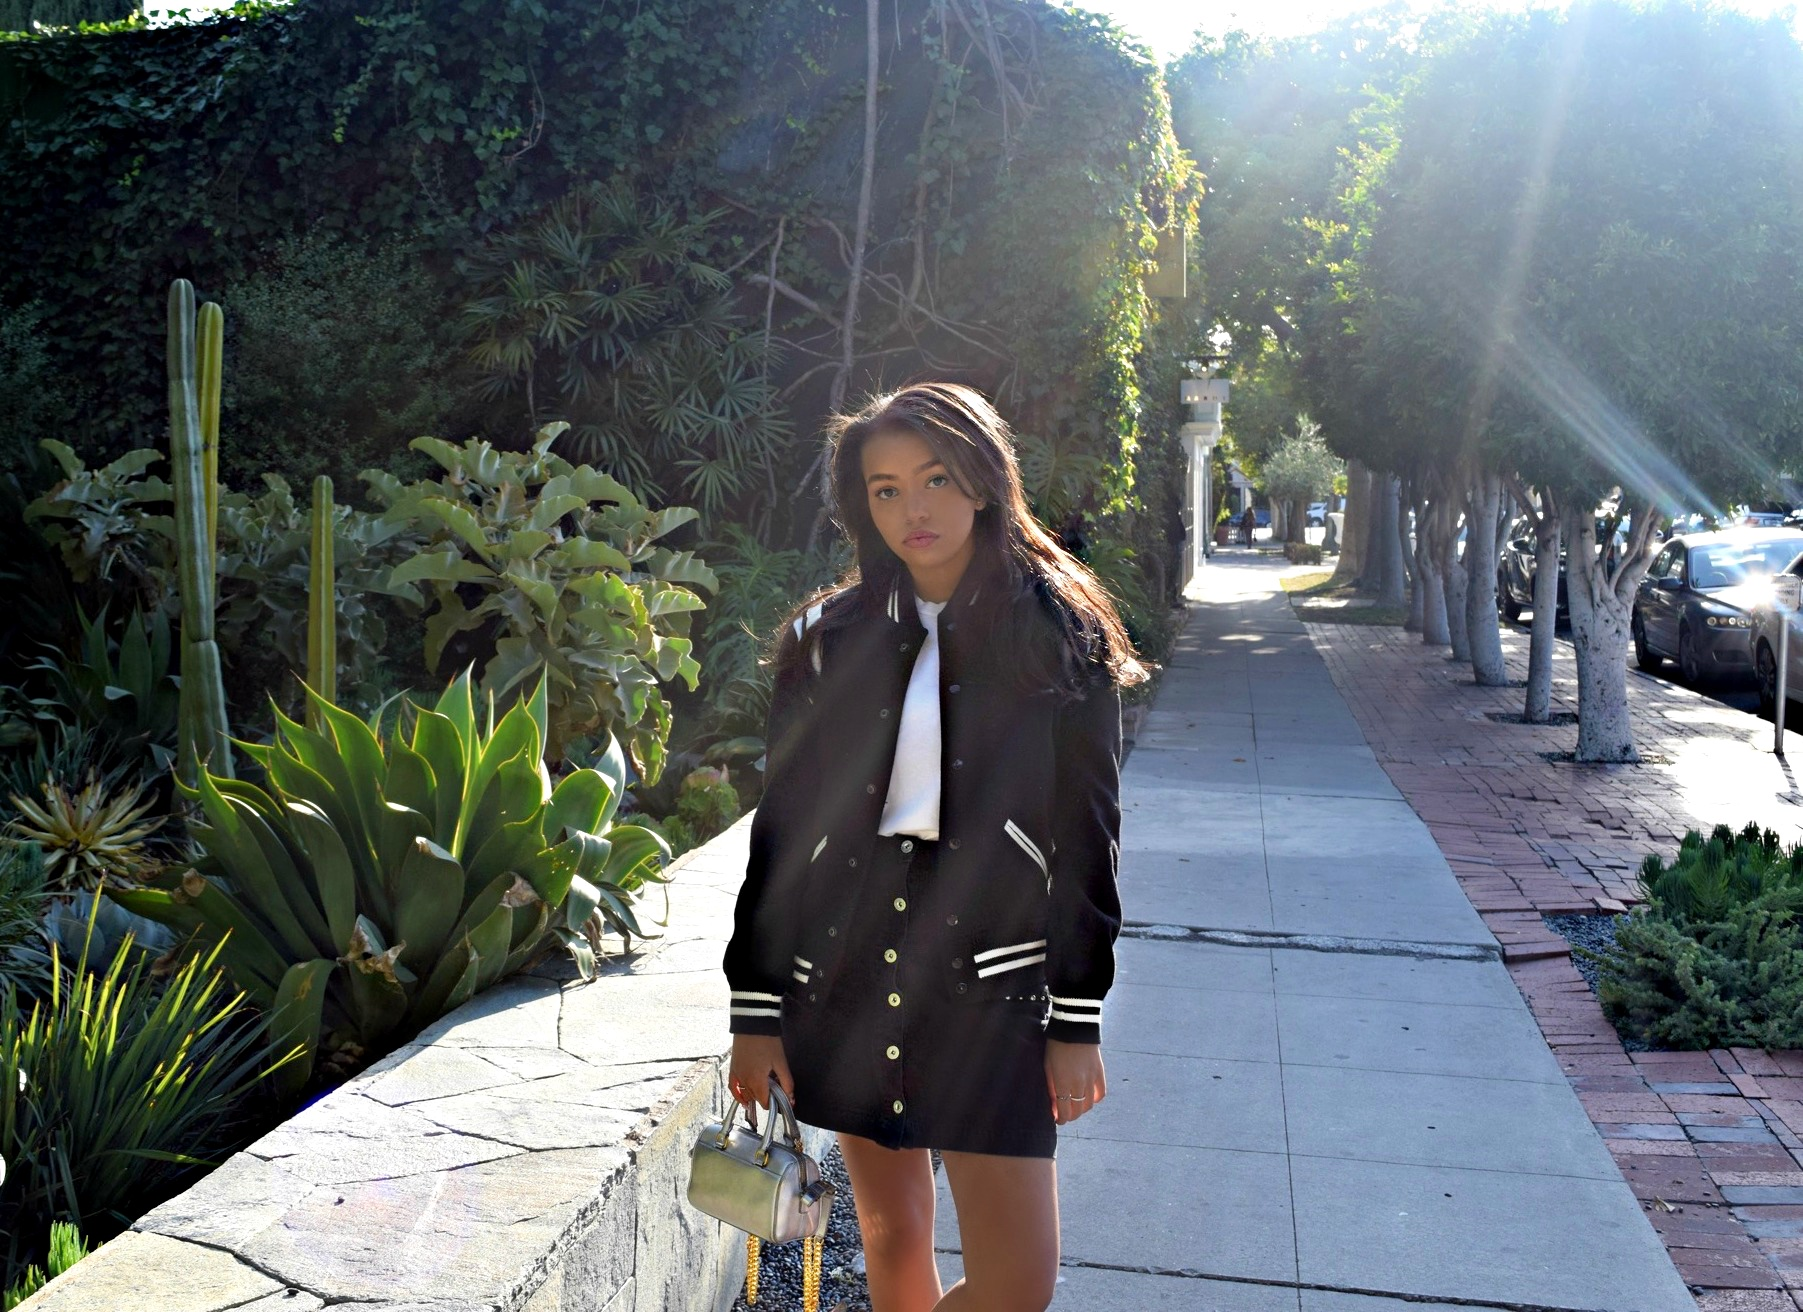 YSL Bomber Jacket, Los Angeles Spring/Summer Street Style: To Style, With Love